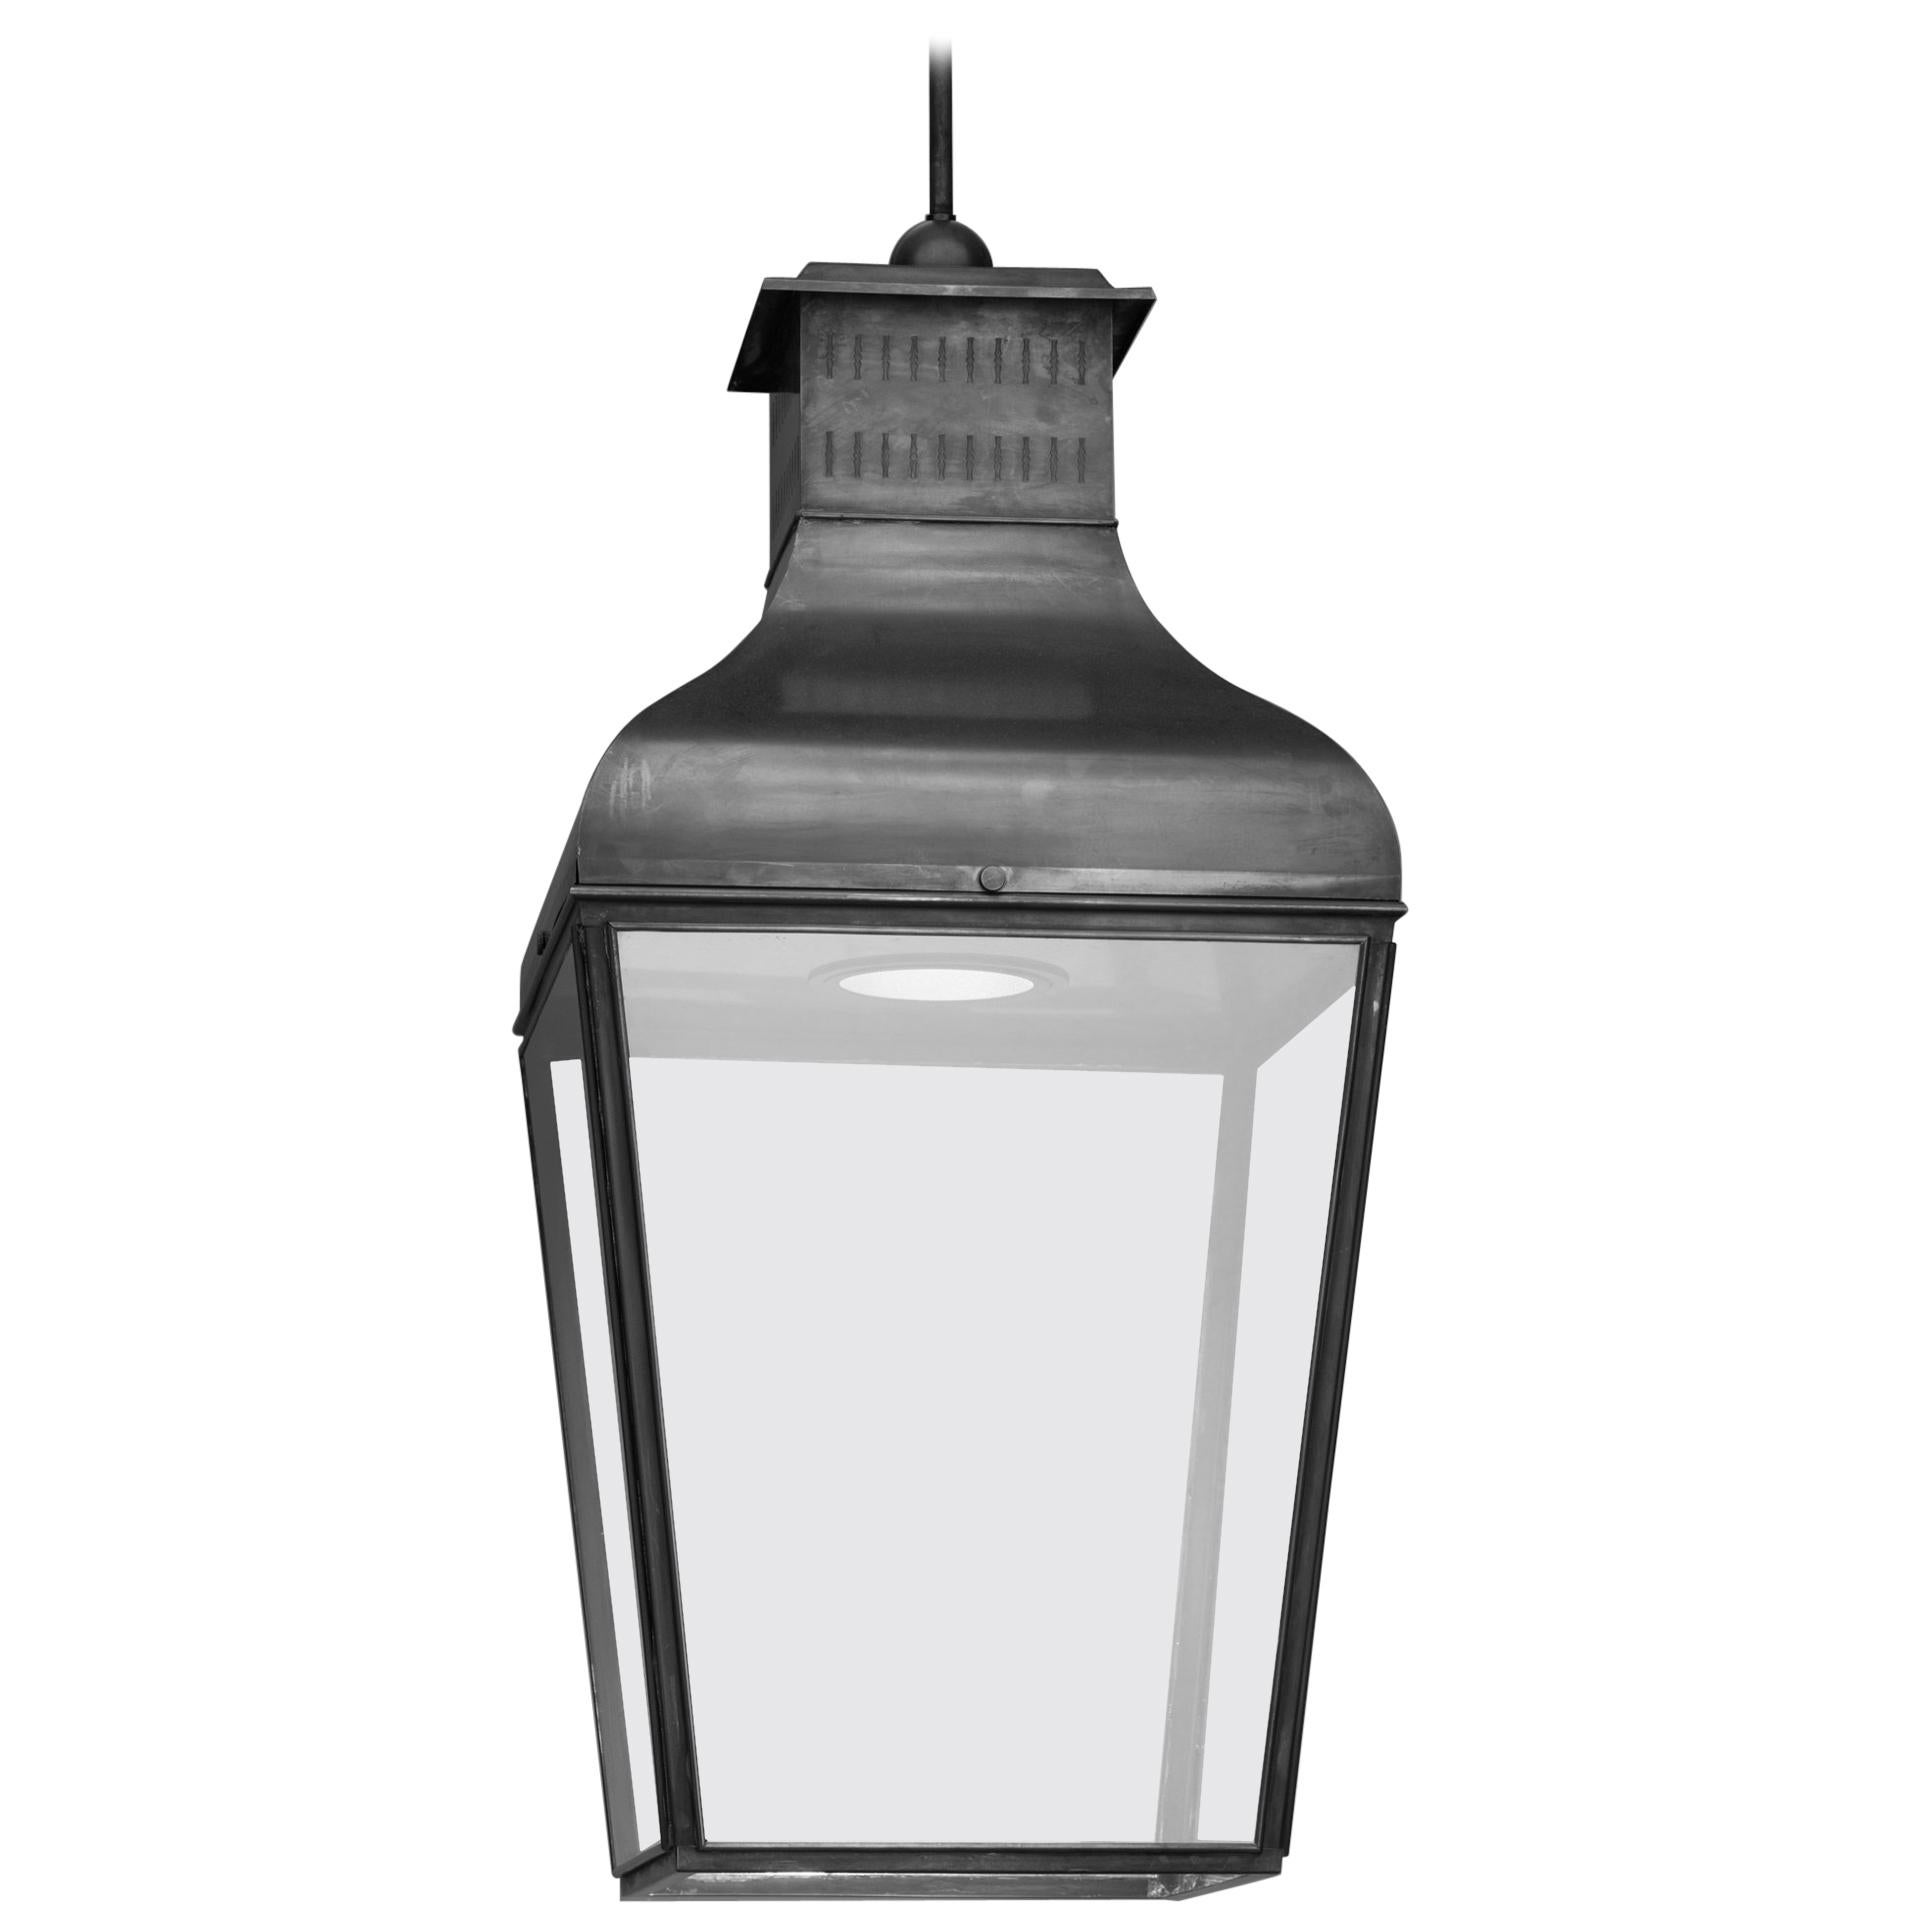 Tekna Montrose Large LED Pendant Light with Dark Bronze Finish and Clear Glass